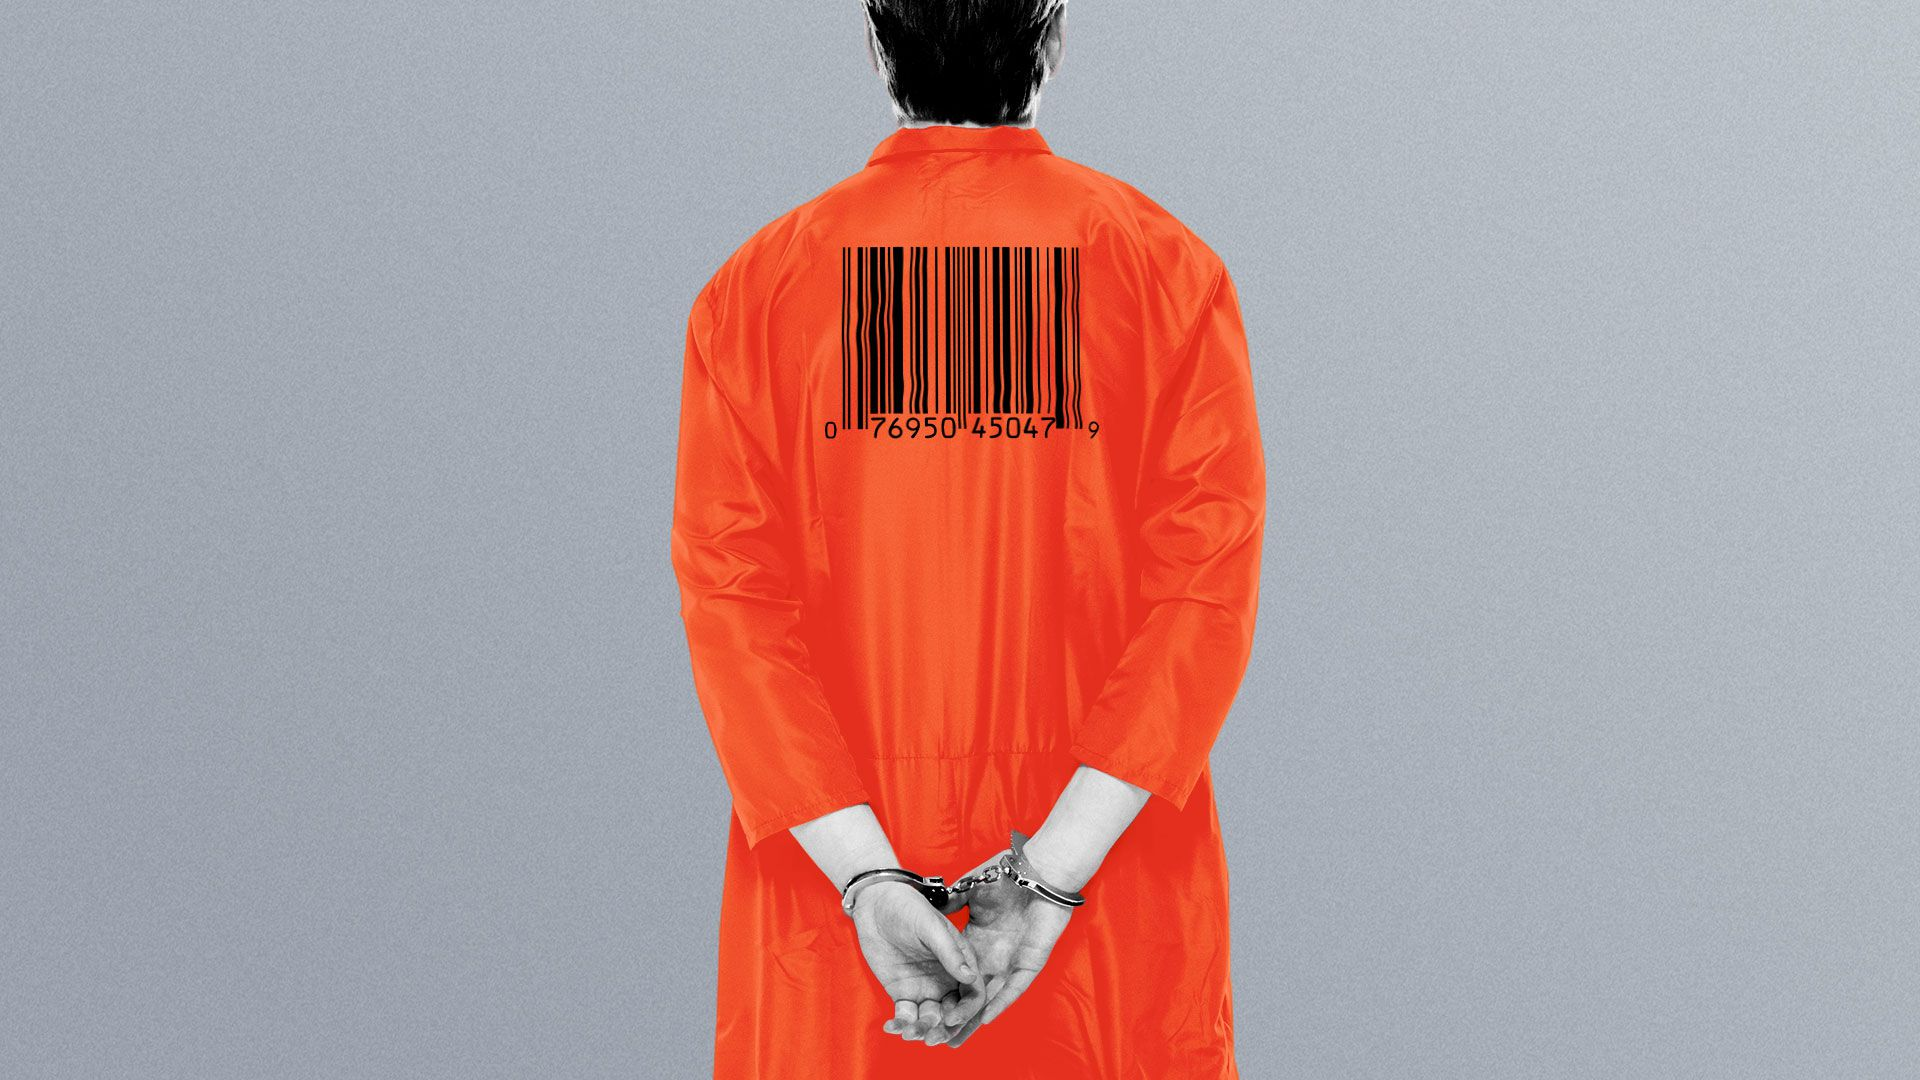 Illustration of an inmate with a barcode on the back of his uniform